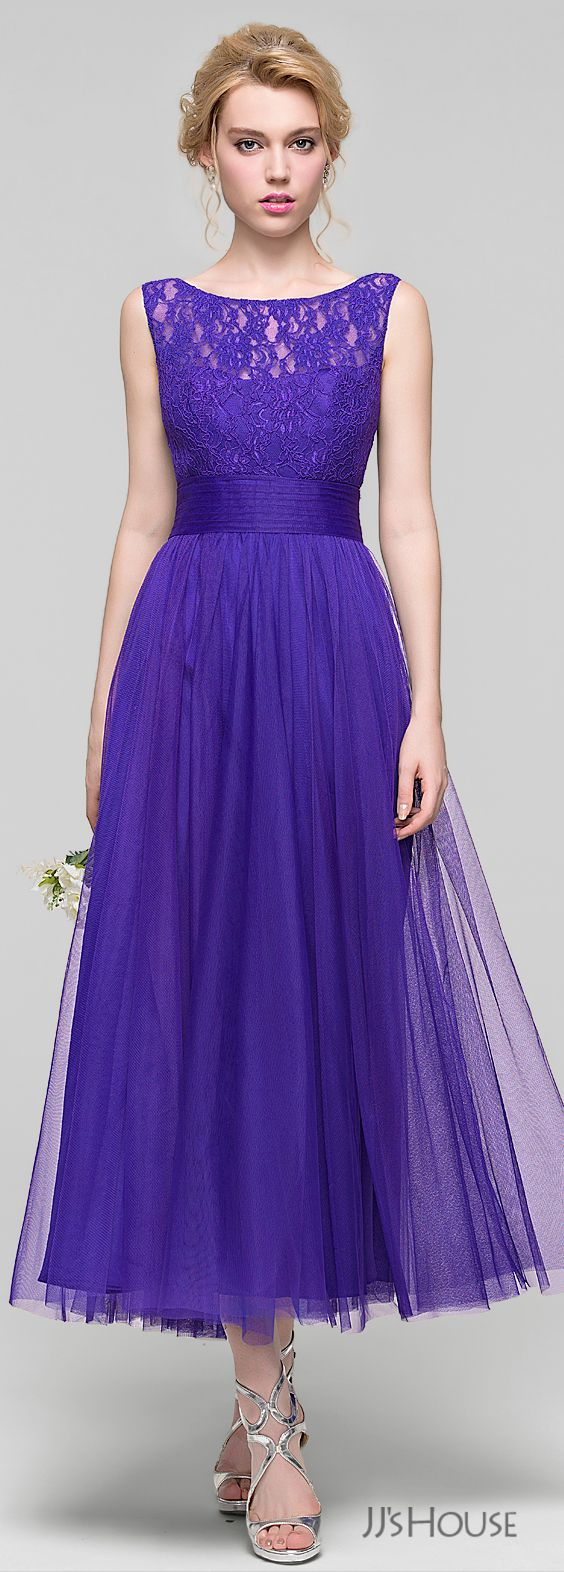 138 best Gowns images on Pinterest | Sewing ideas, Sewing projects ...